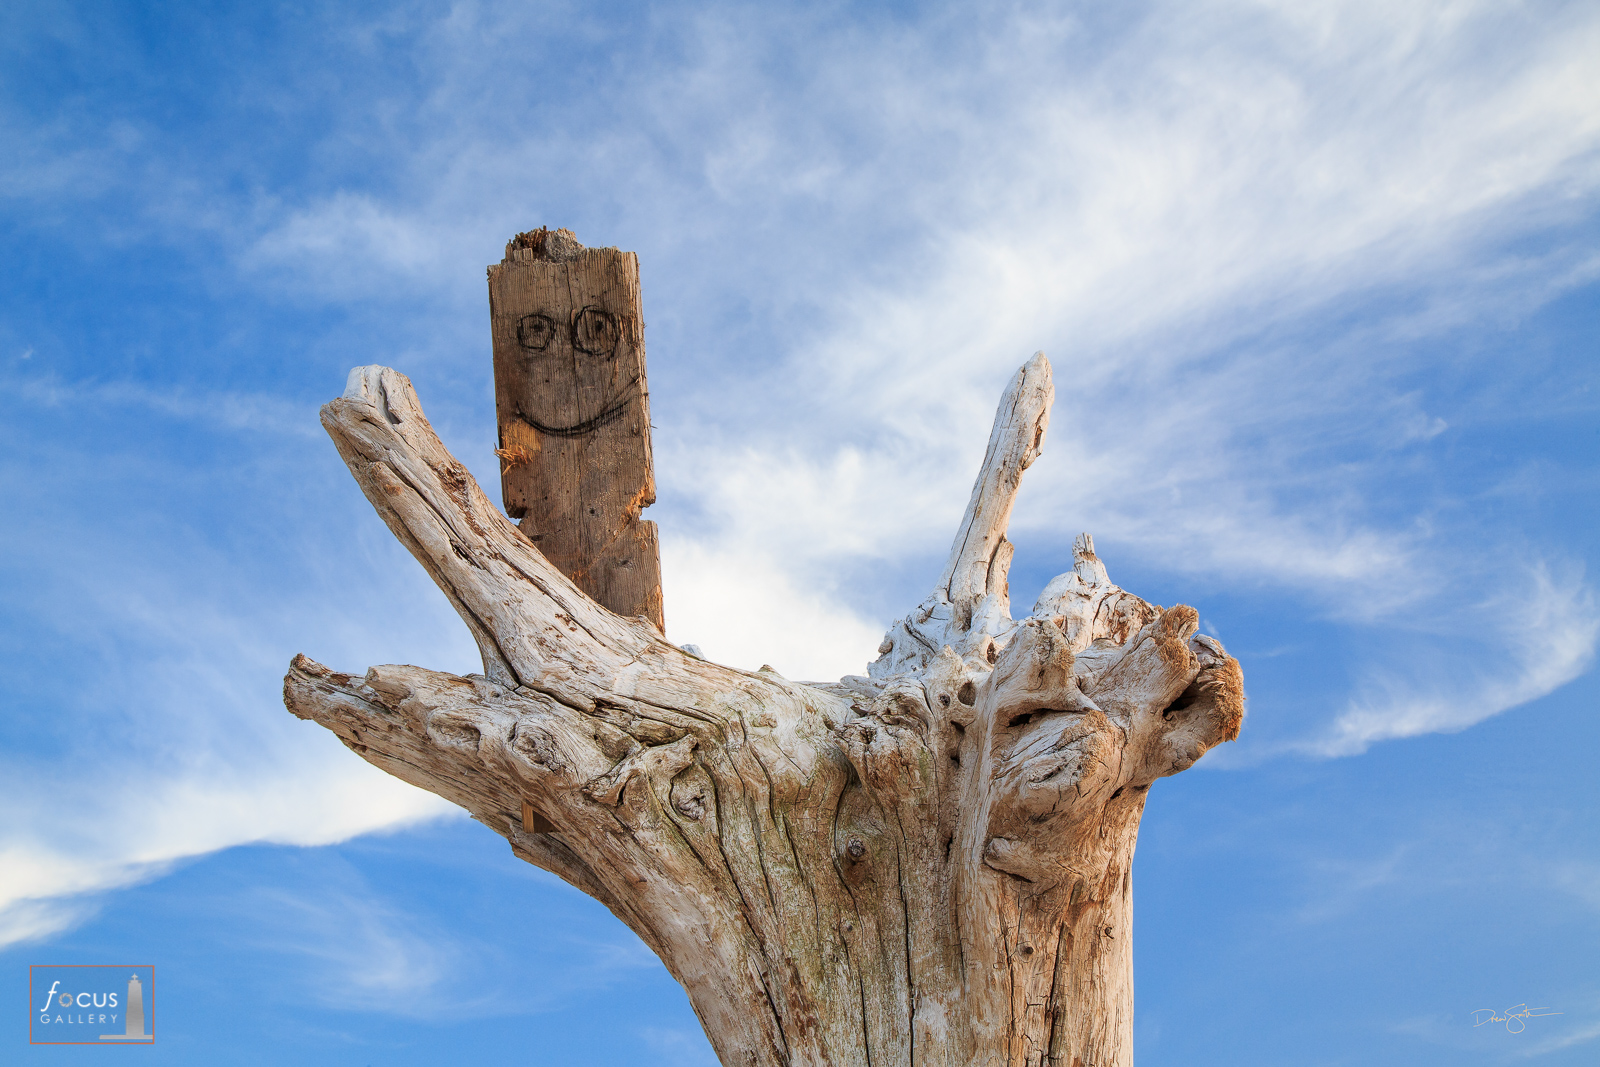 Photo of an old wooden plank with a smiley face on it against a blue sky.